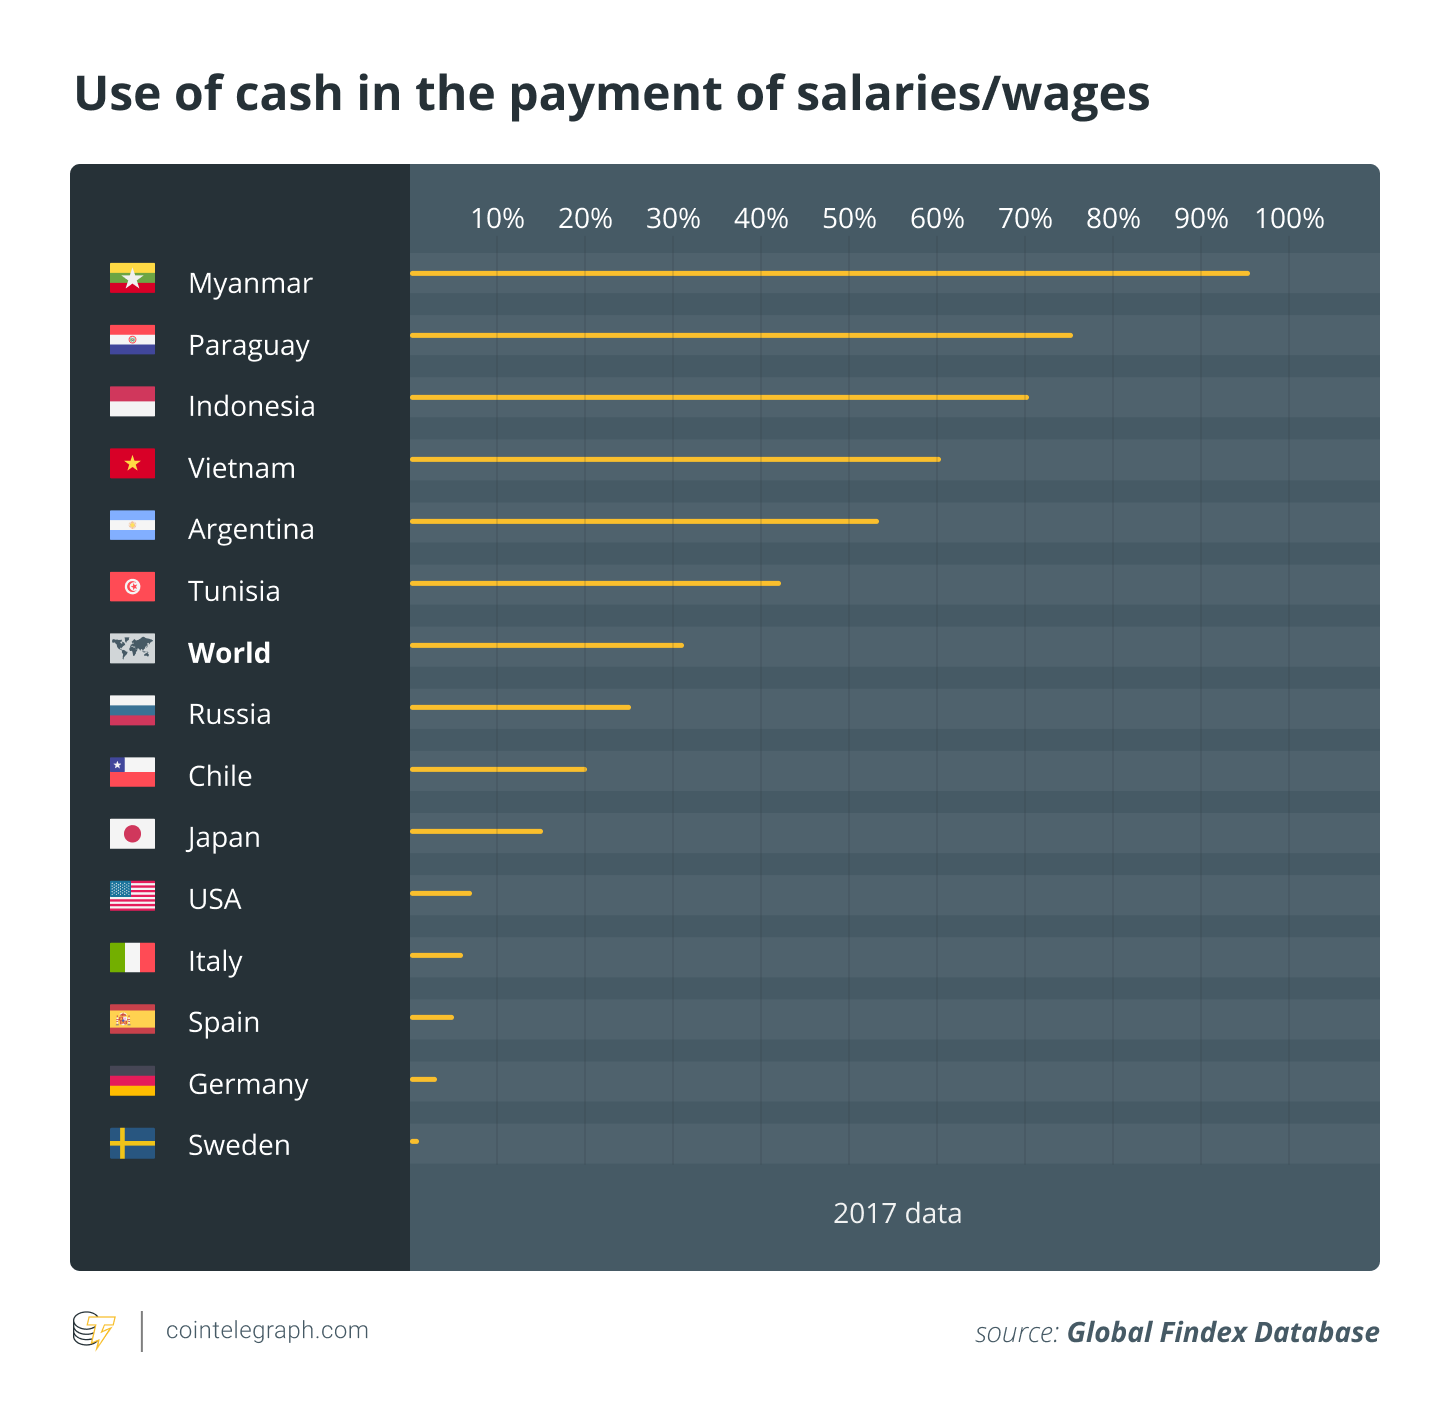 Use of cash in the payment of salaries/wages